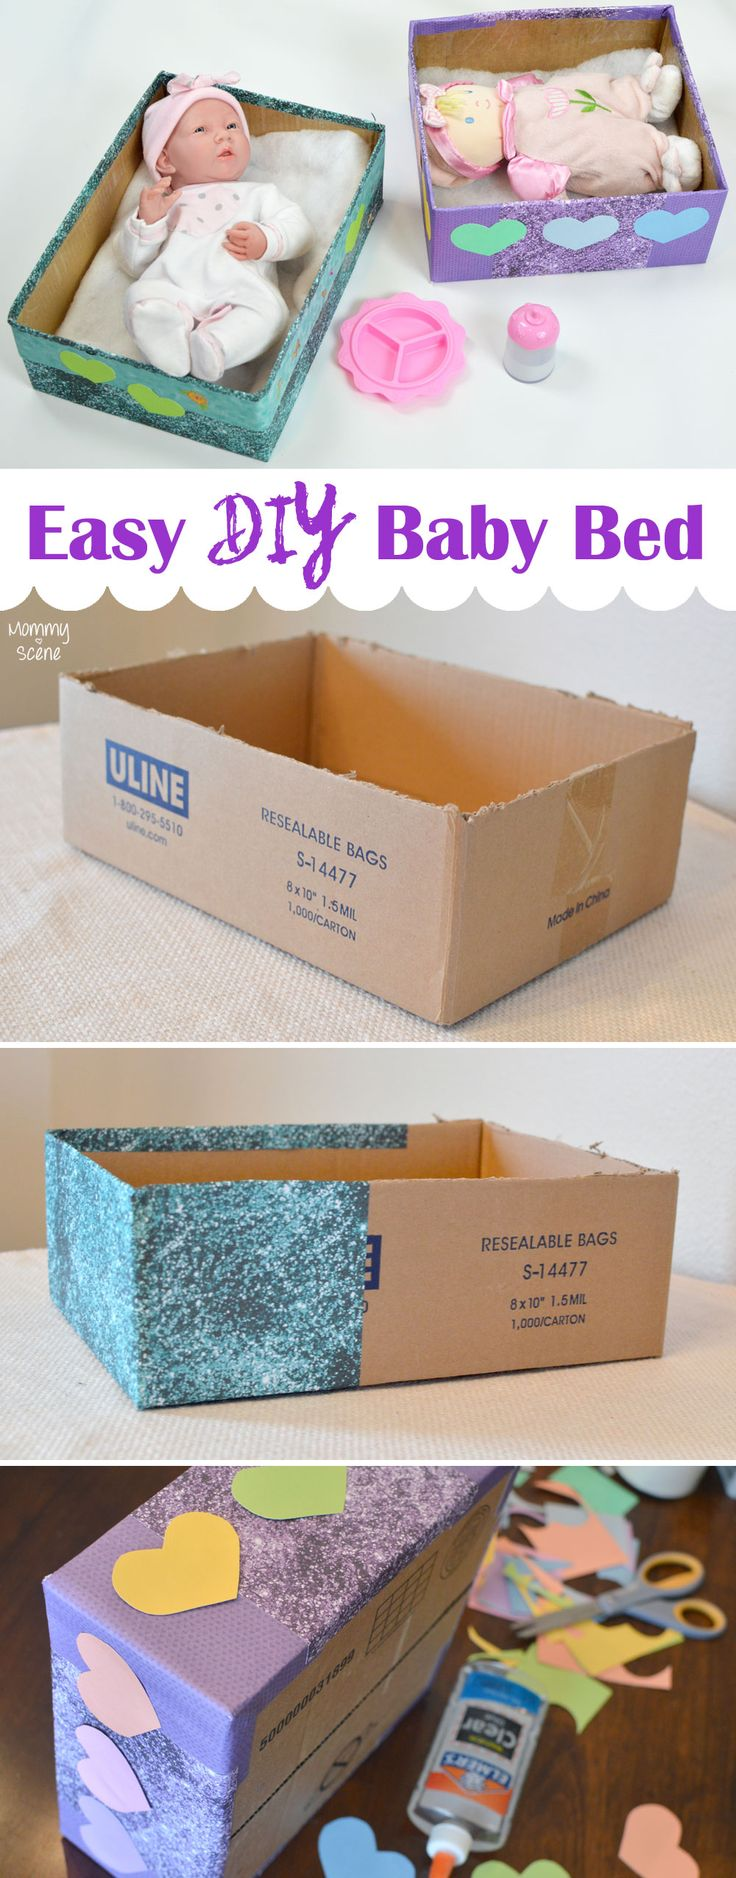 Make a DIY doll bed from a cardboard box - Mommy Scene